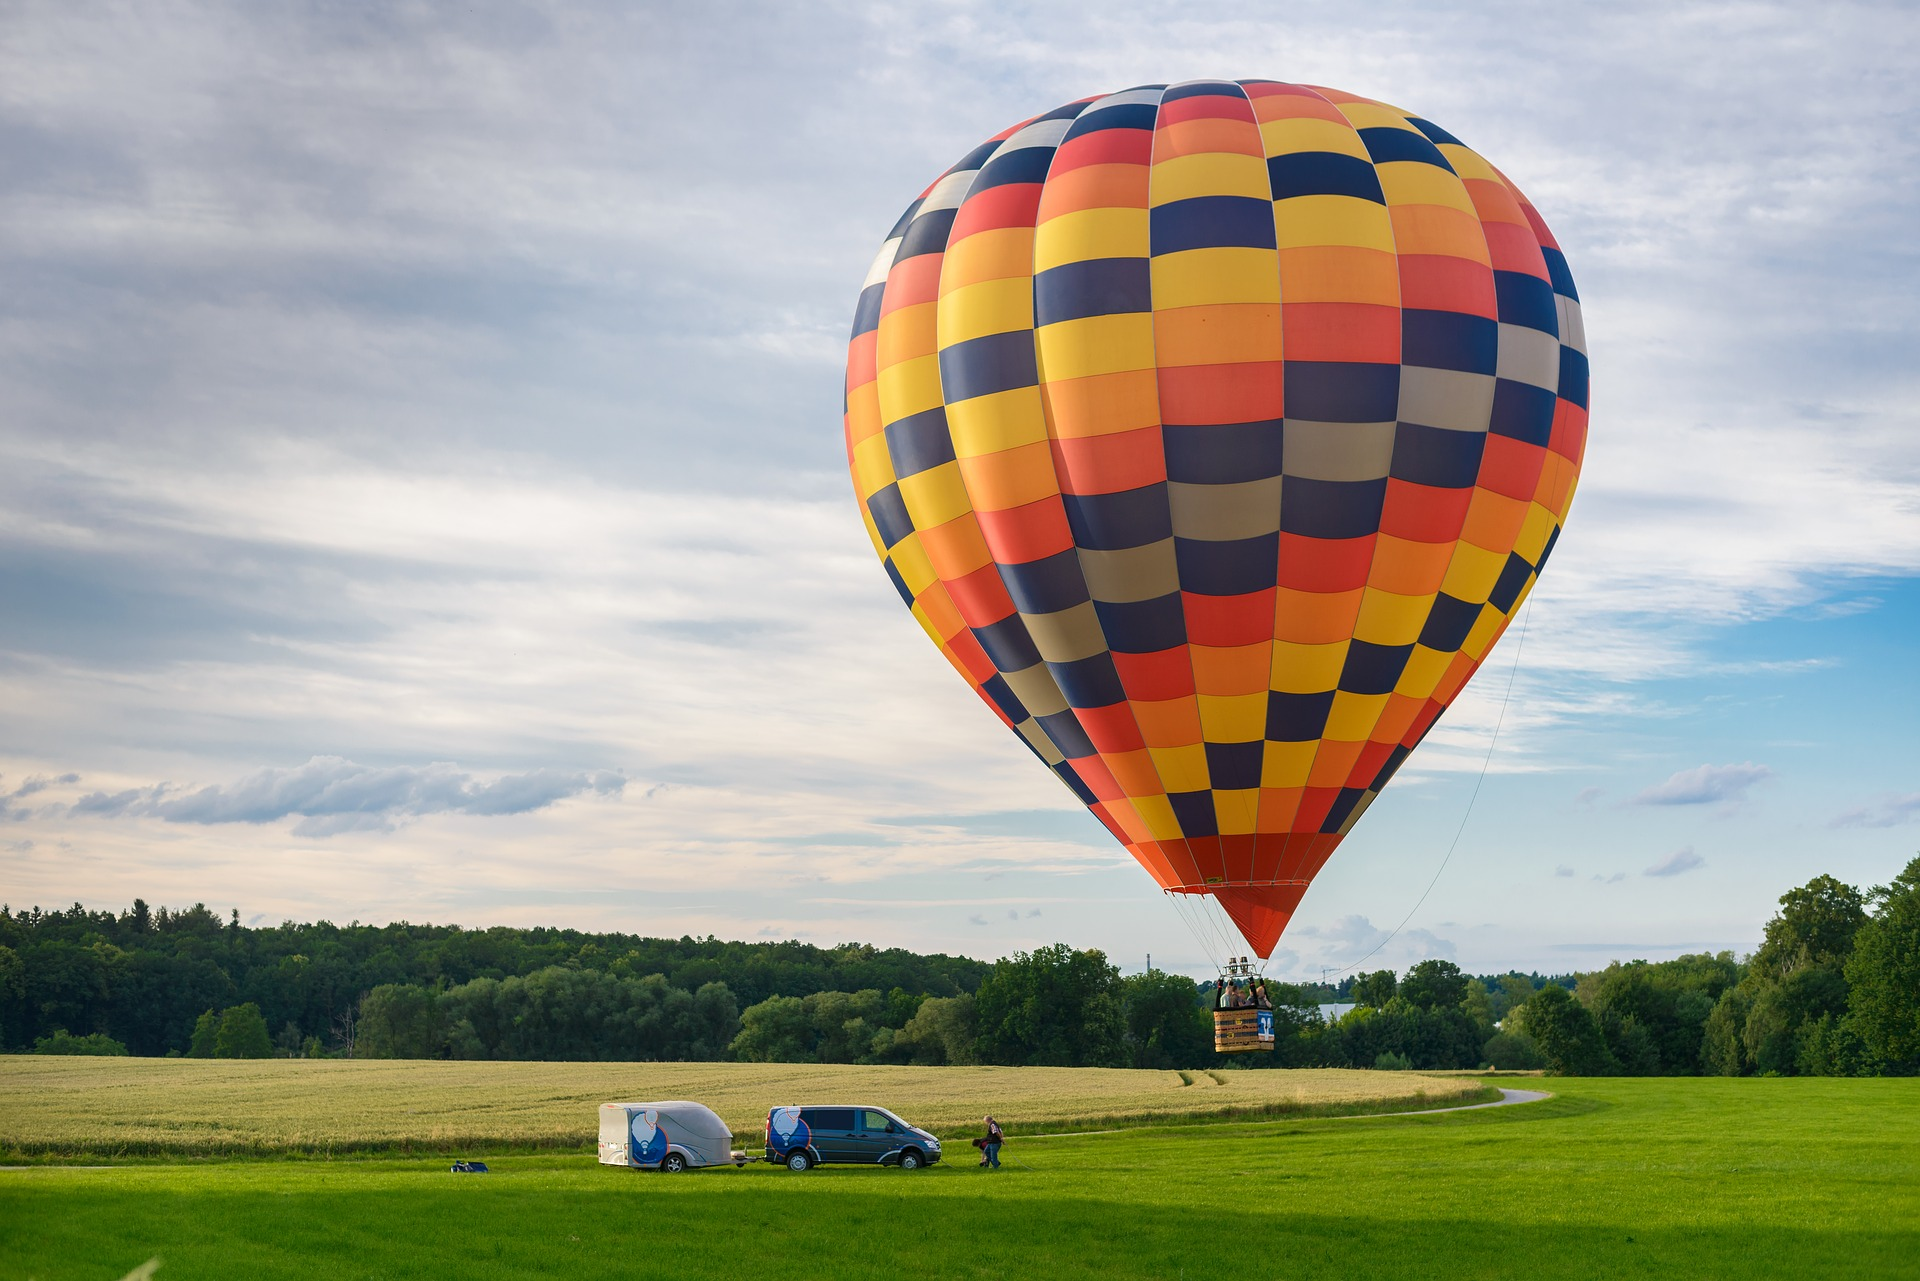 Hot Air Balloon Rides - Adventure Activitie That Tourists Must Experience In Rajasthan